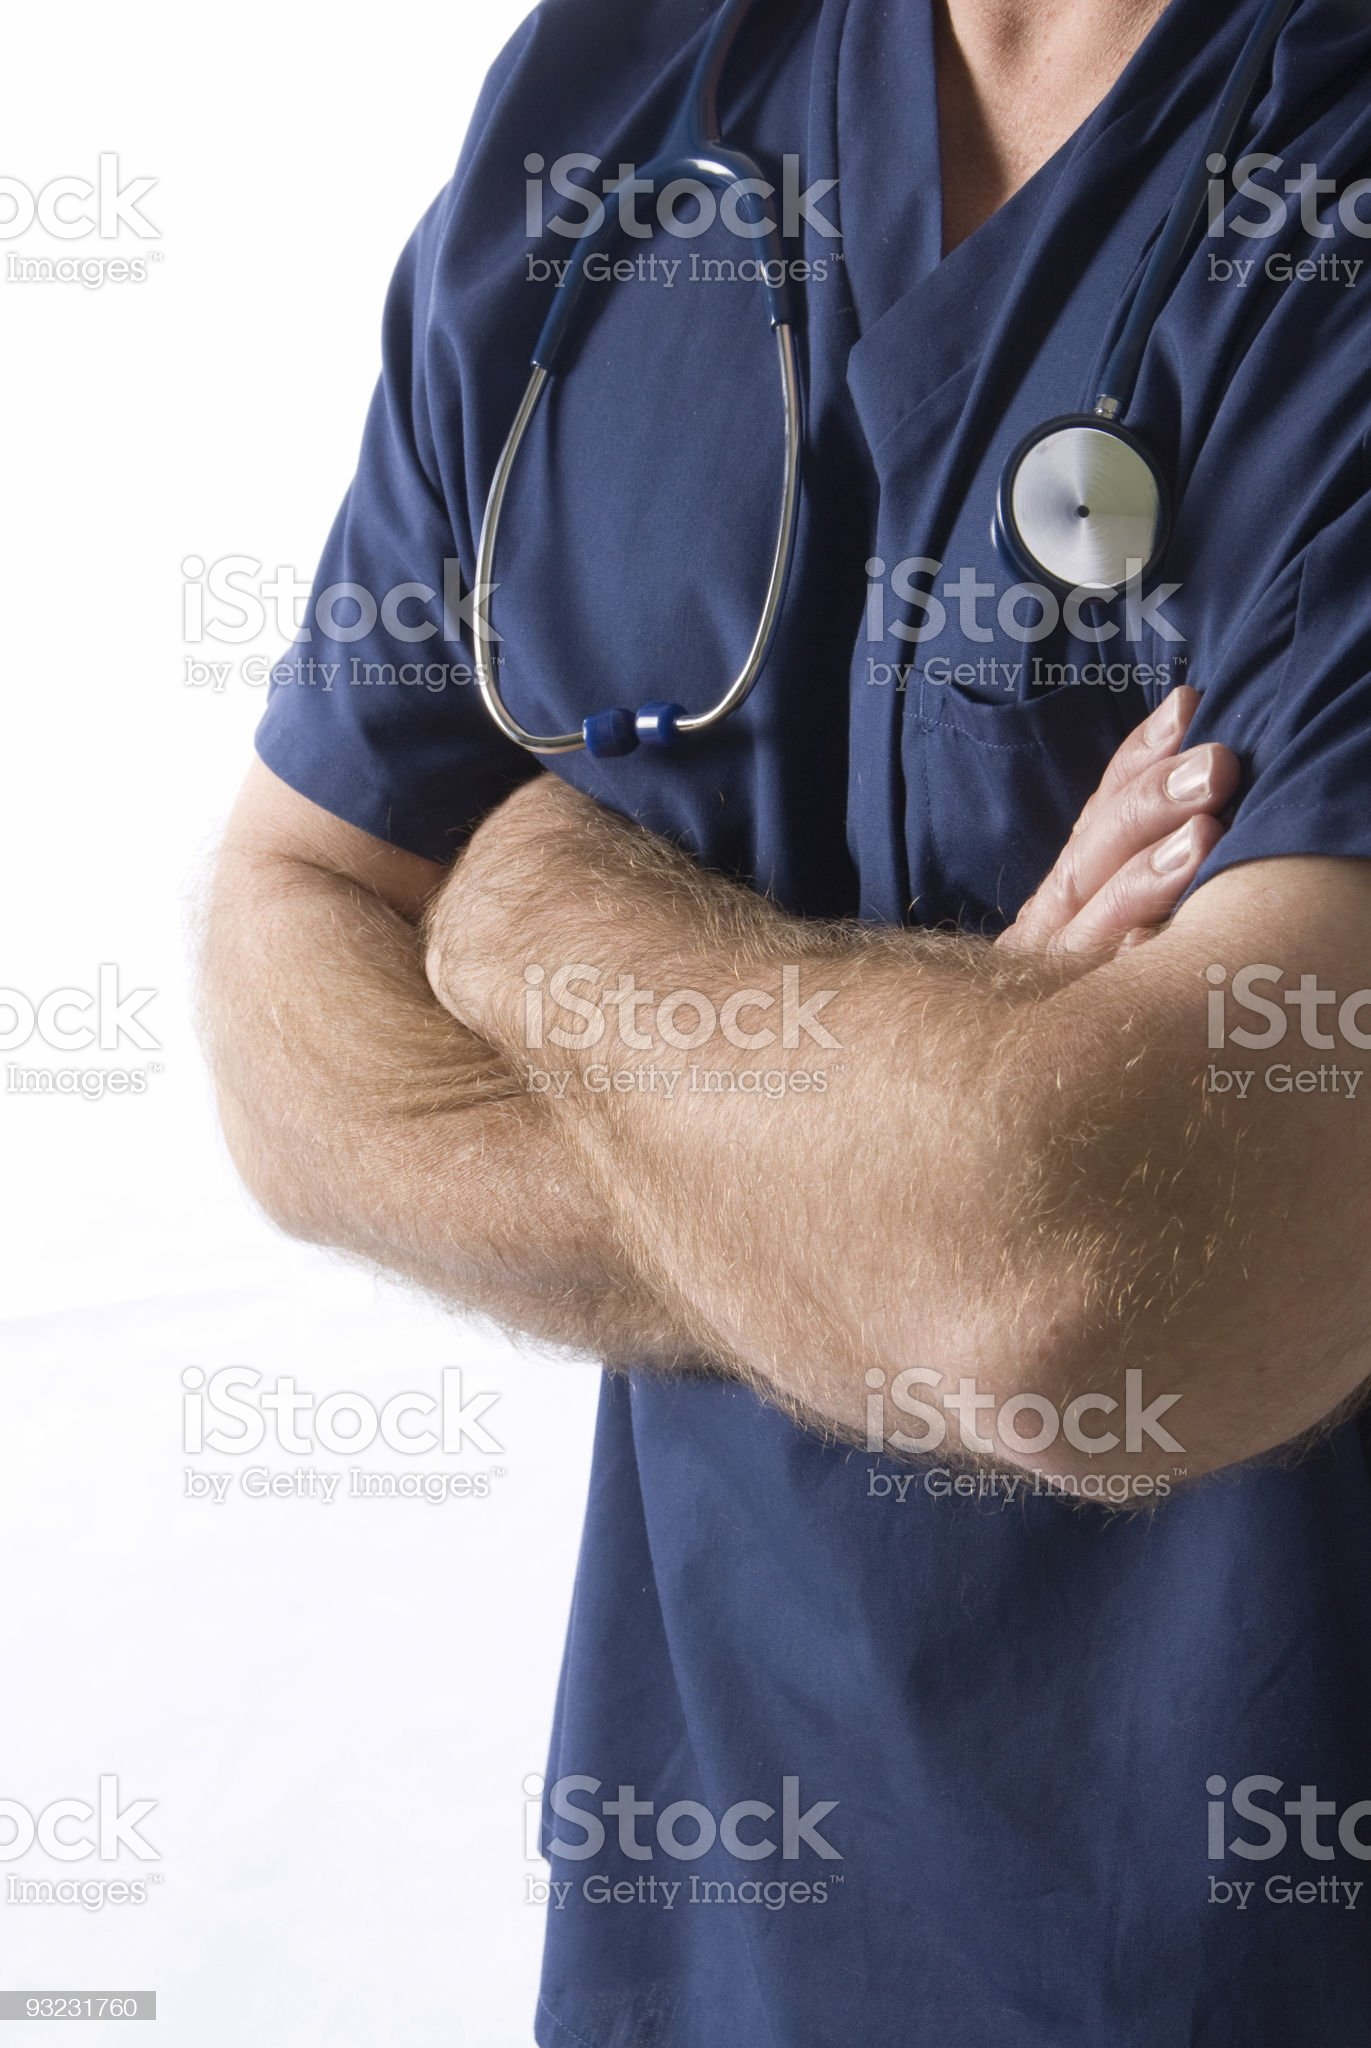 Doctor concepts royalty-free stock photo